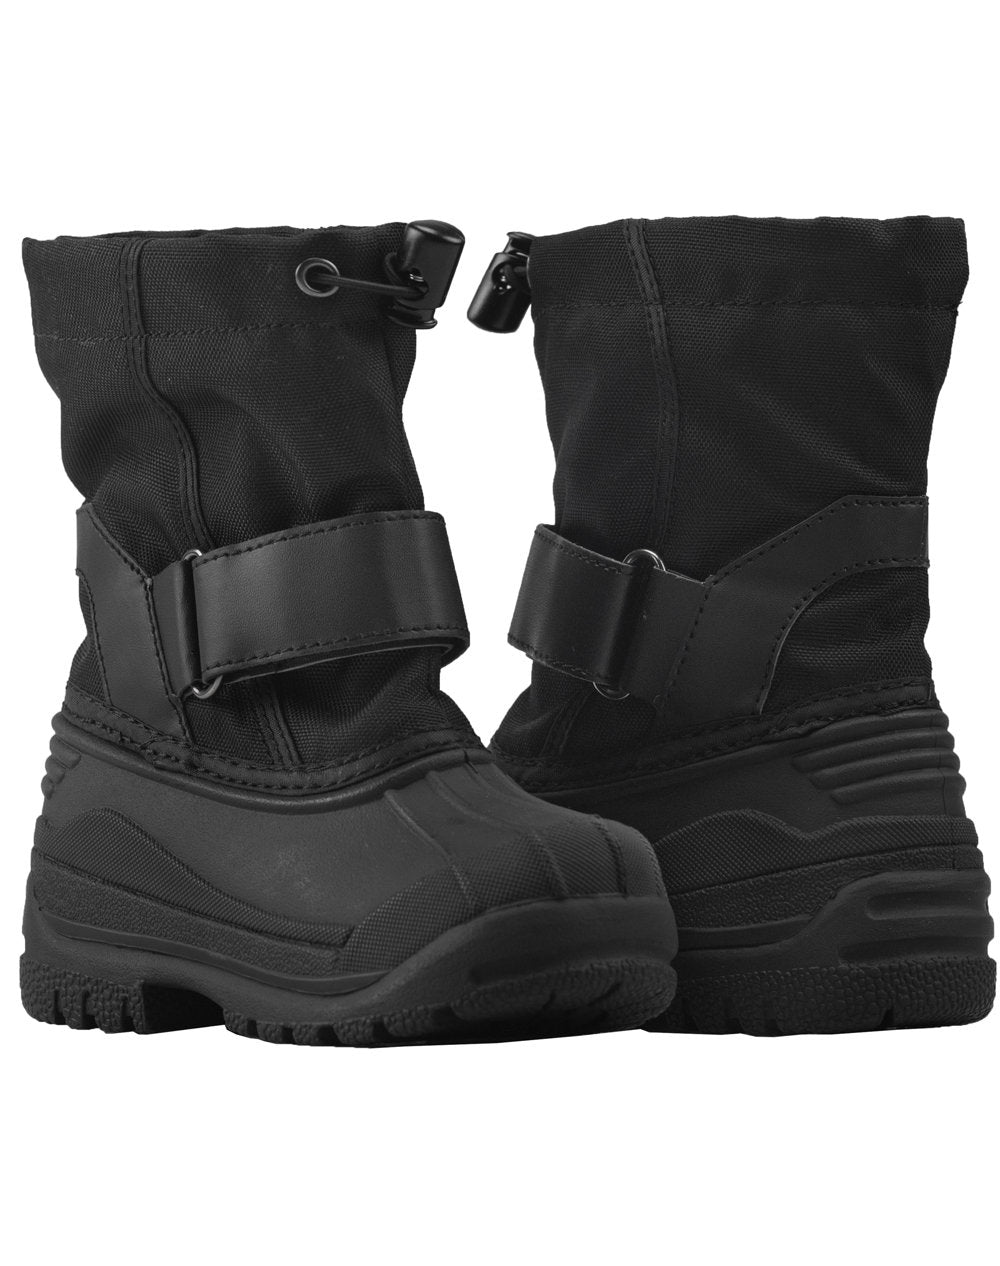 Stealth Black Velcro Snow Boots